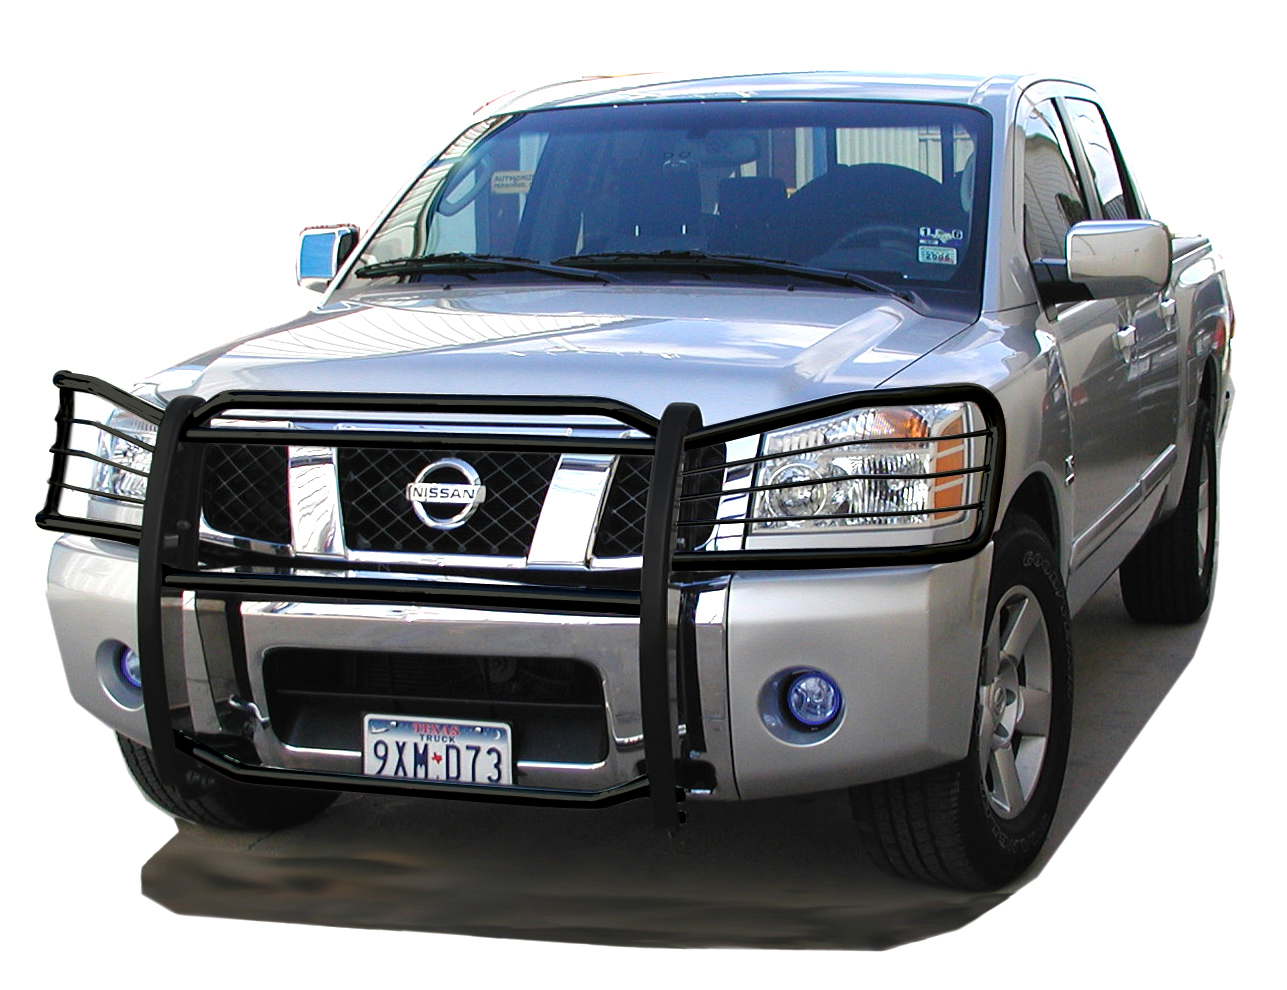 Other Items Faqs Warranty Contact Us Application Charts Grille Guards Bull Bars Running Boards Sports Bars Item Gn 804 F 120 Bk 309 04 15 Nissan Titan Armada Grill Guard Black List Price 499 Our Sale Price Only